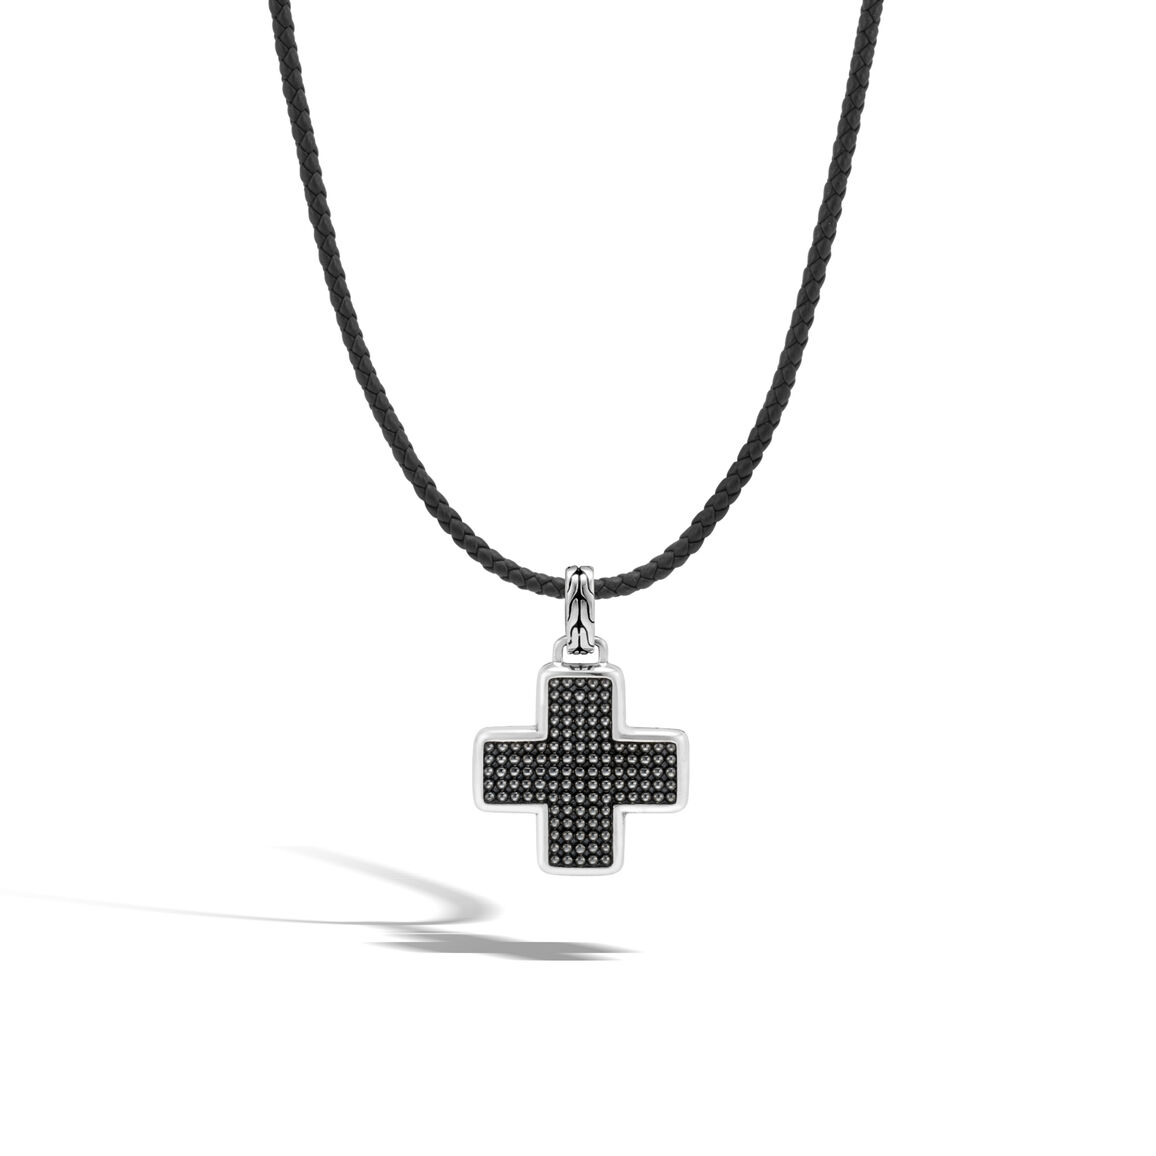 Chain Jawan Cross Pendant in Silver and Leather